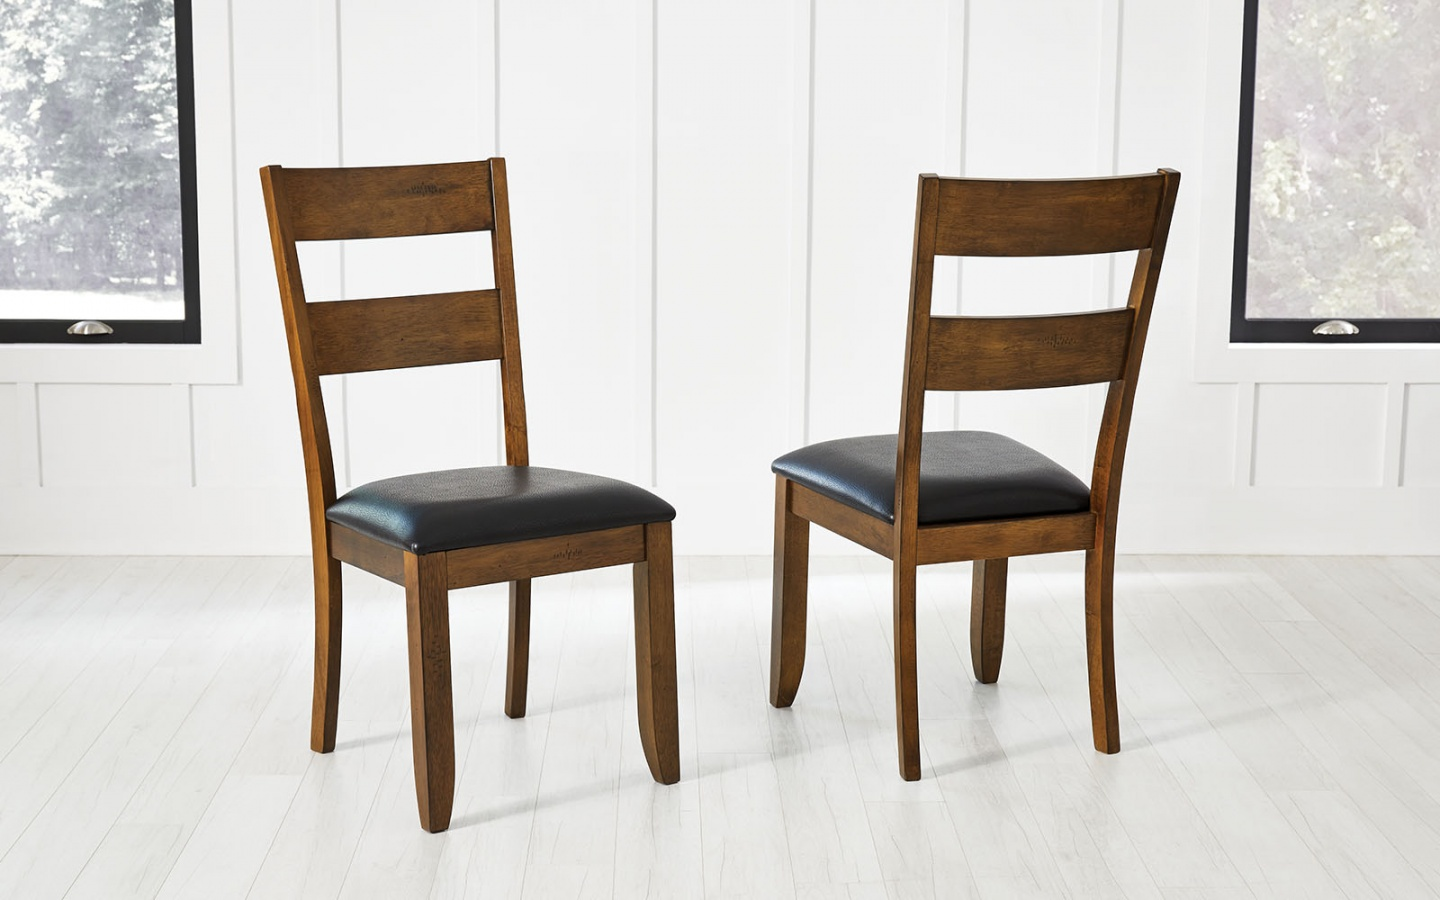 Mariposa RW Ladderback Side Chair